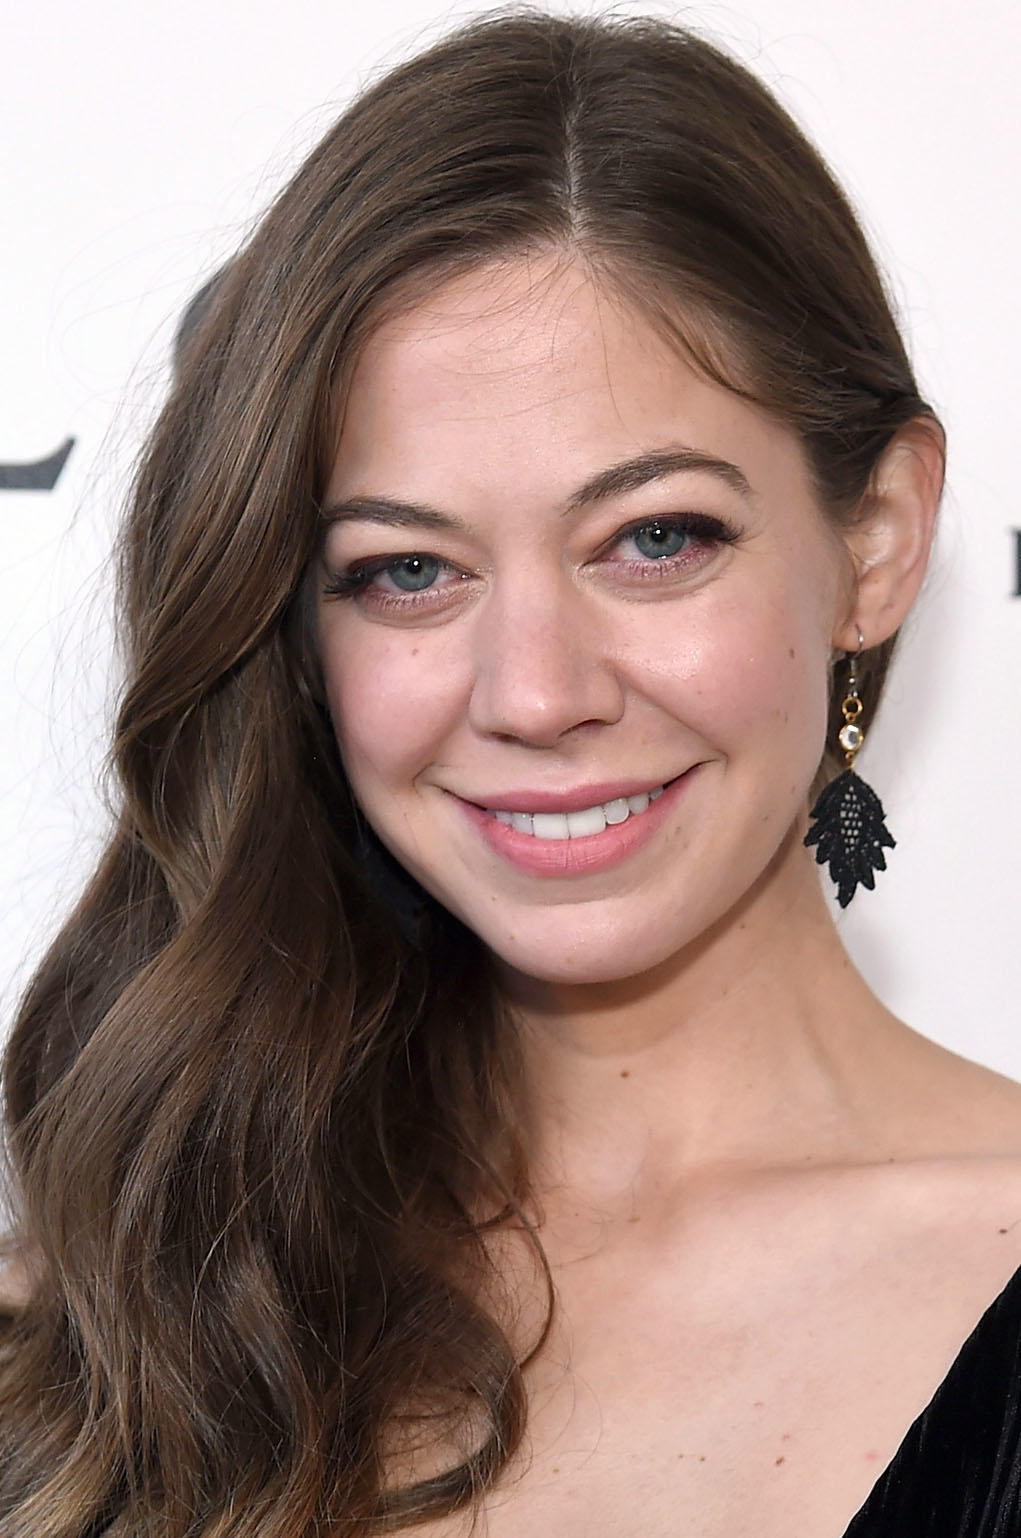 Annaleigh Tipton at the 26th annual Elton John AIDS Foundation Academy Awards viewing party in West Hollywood, California.